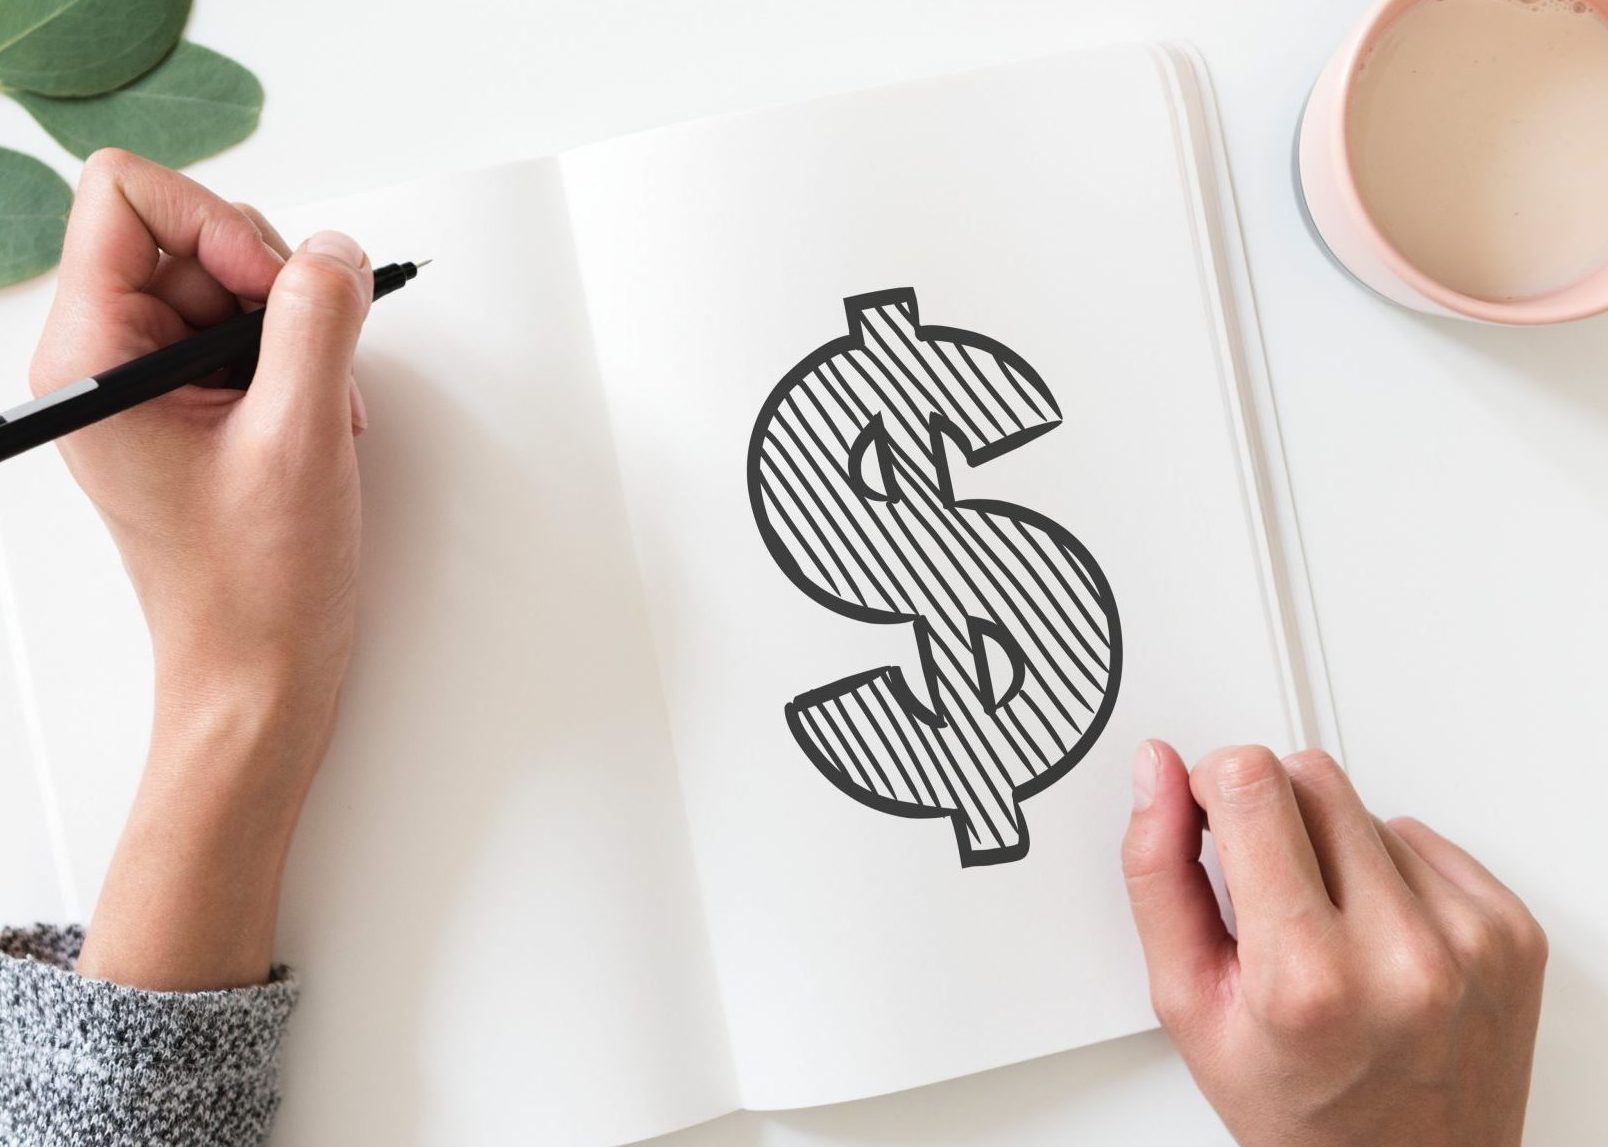 Big dollar sign written in book with woman's hands